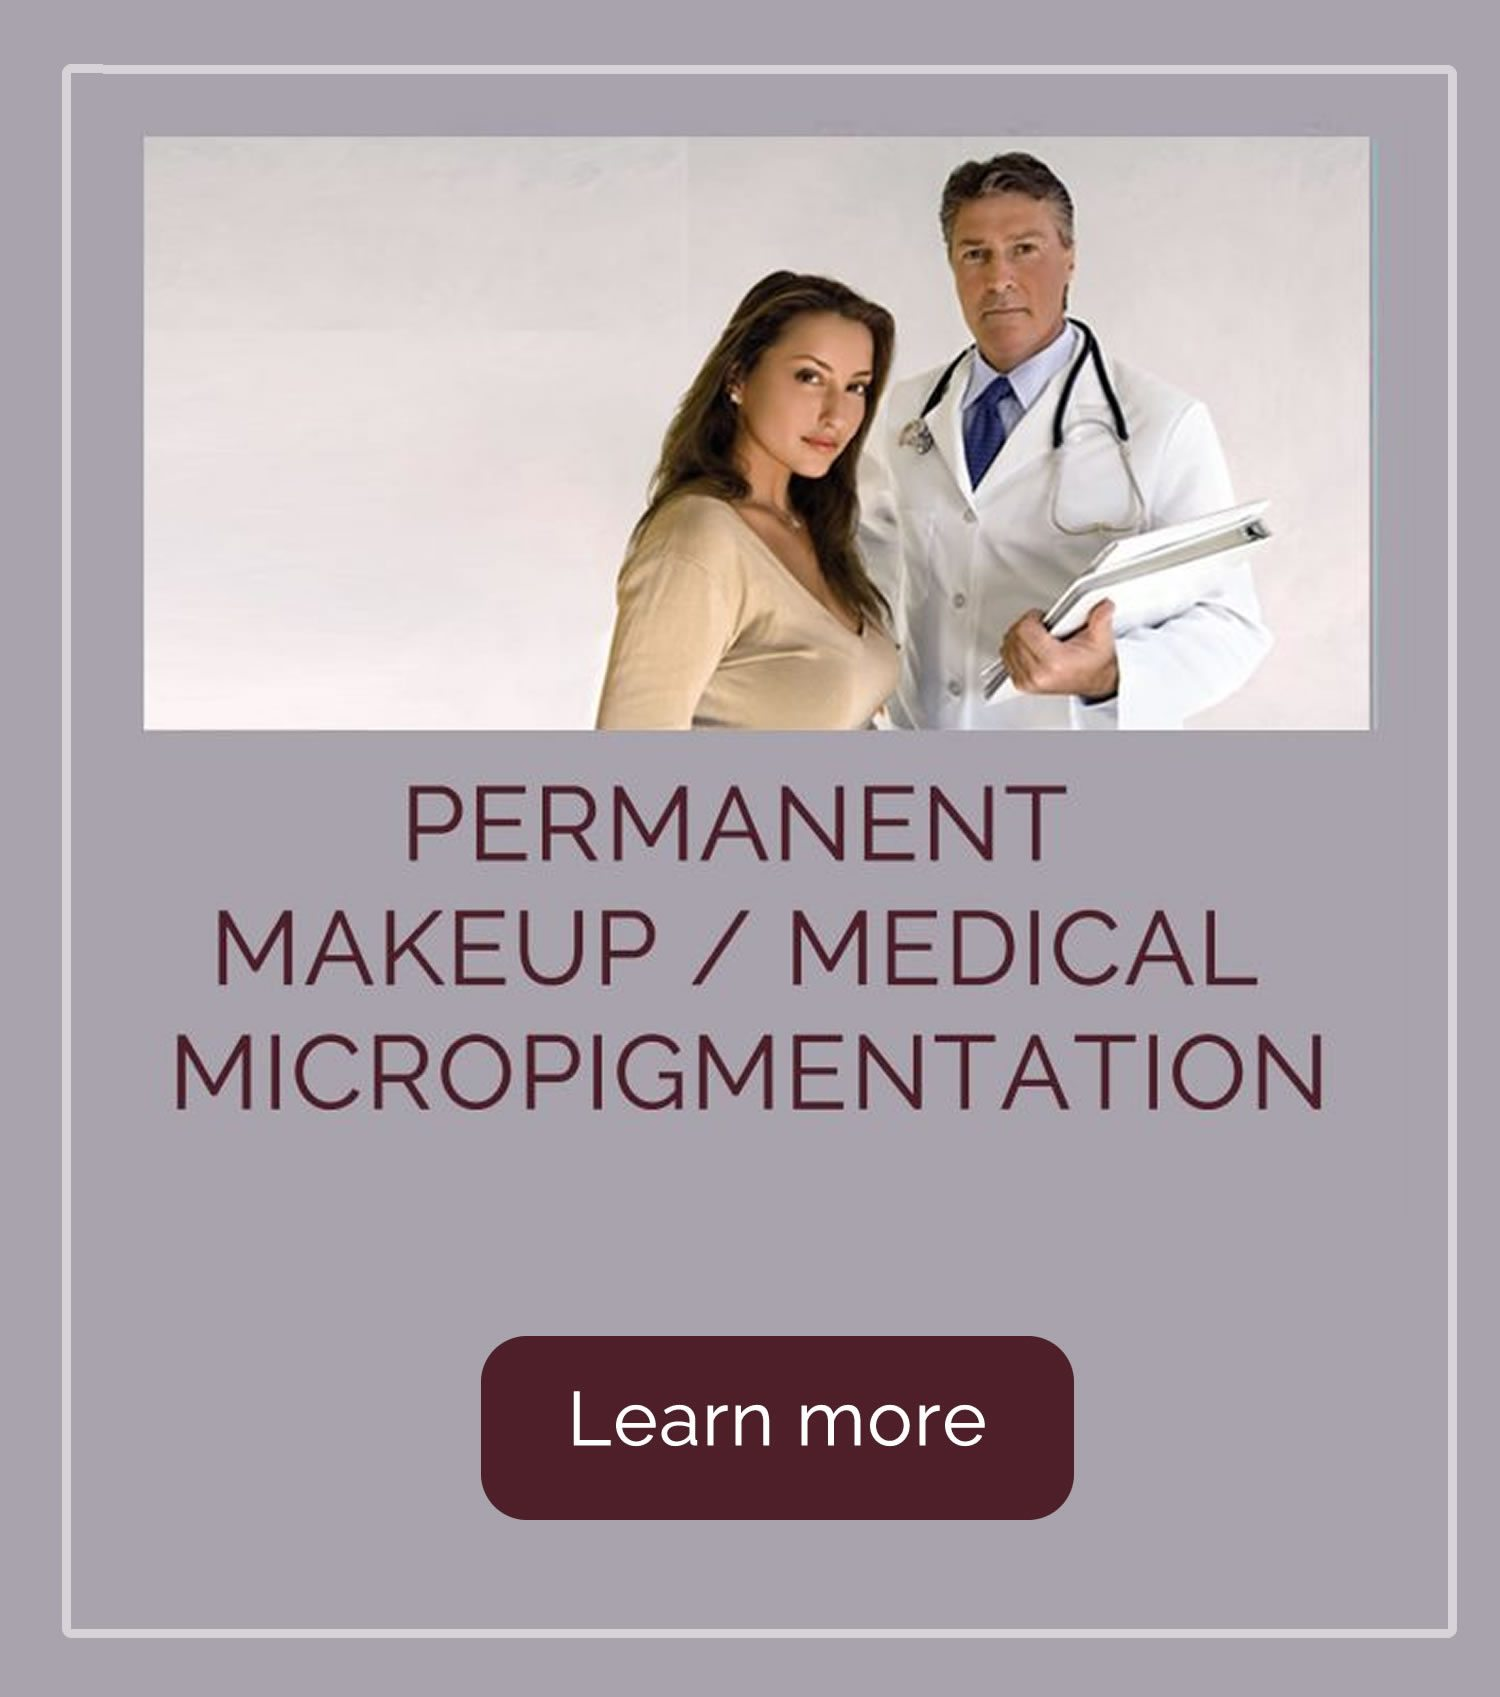 Permanent Makeup / Medical Micropigmentation